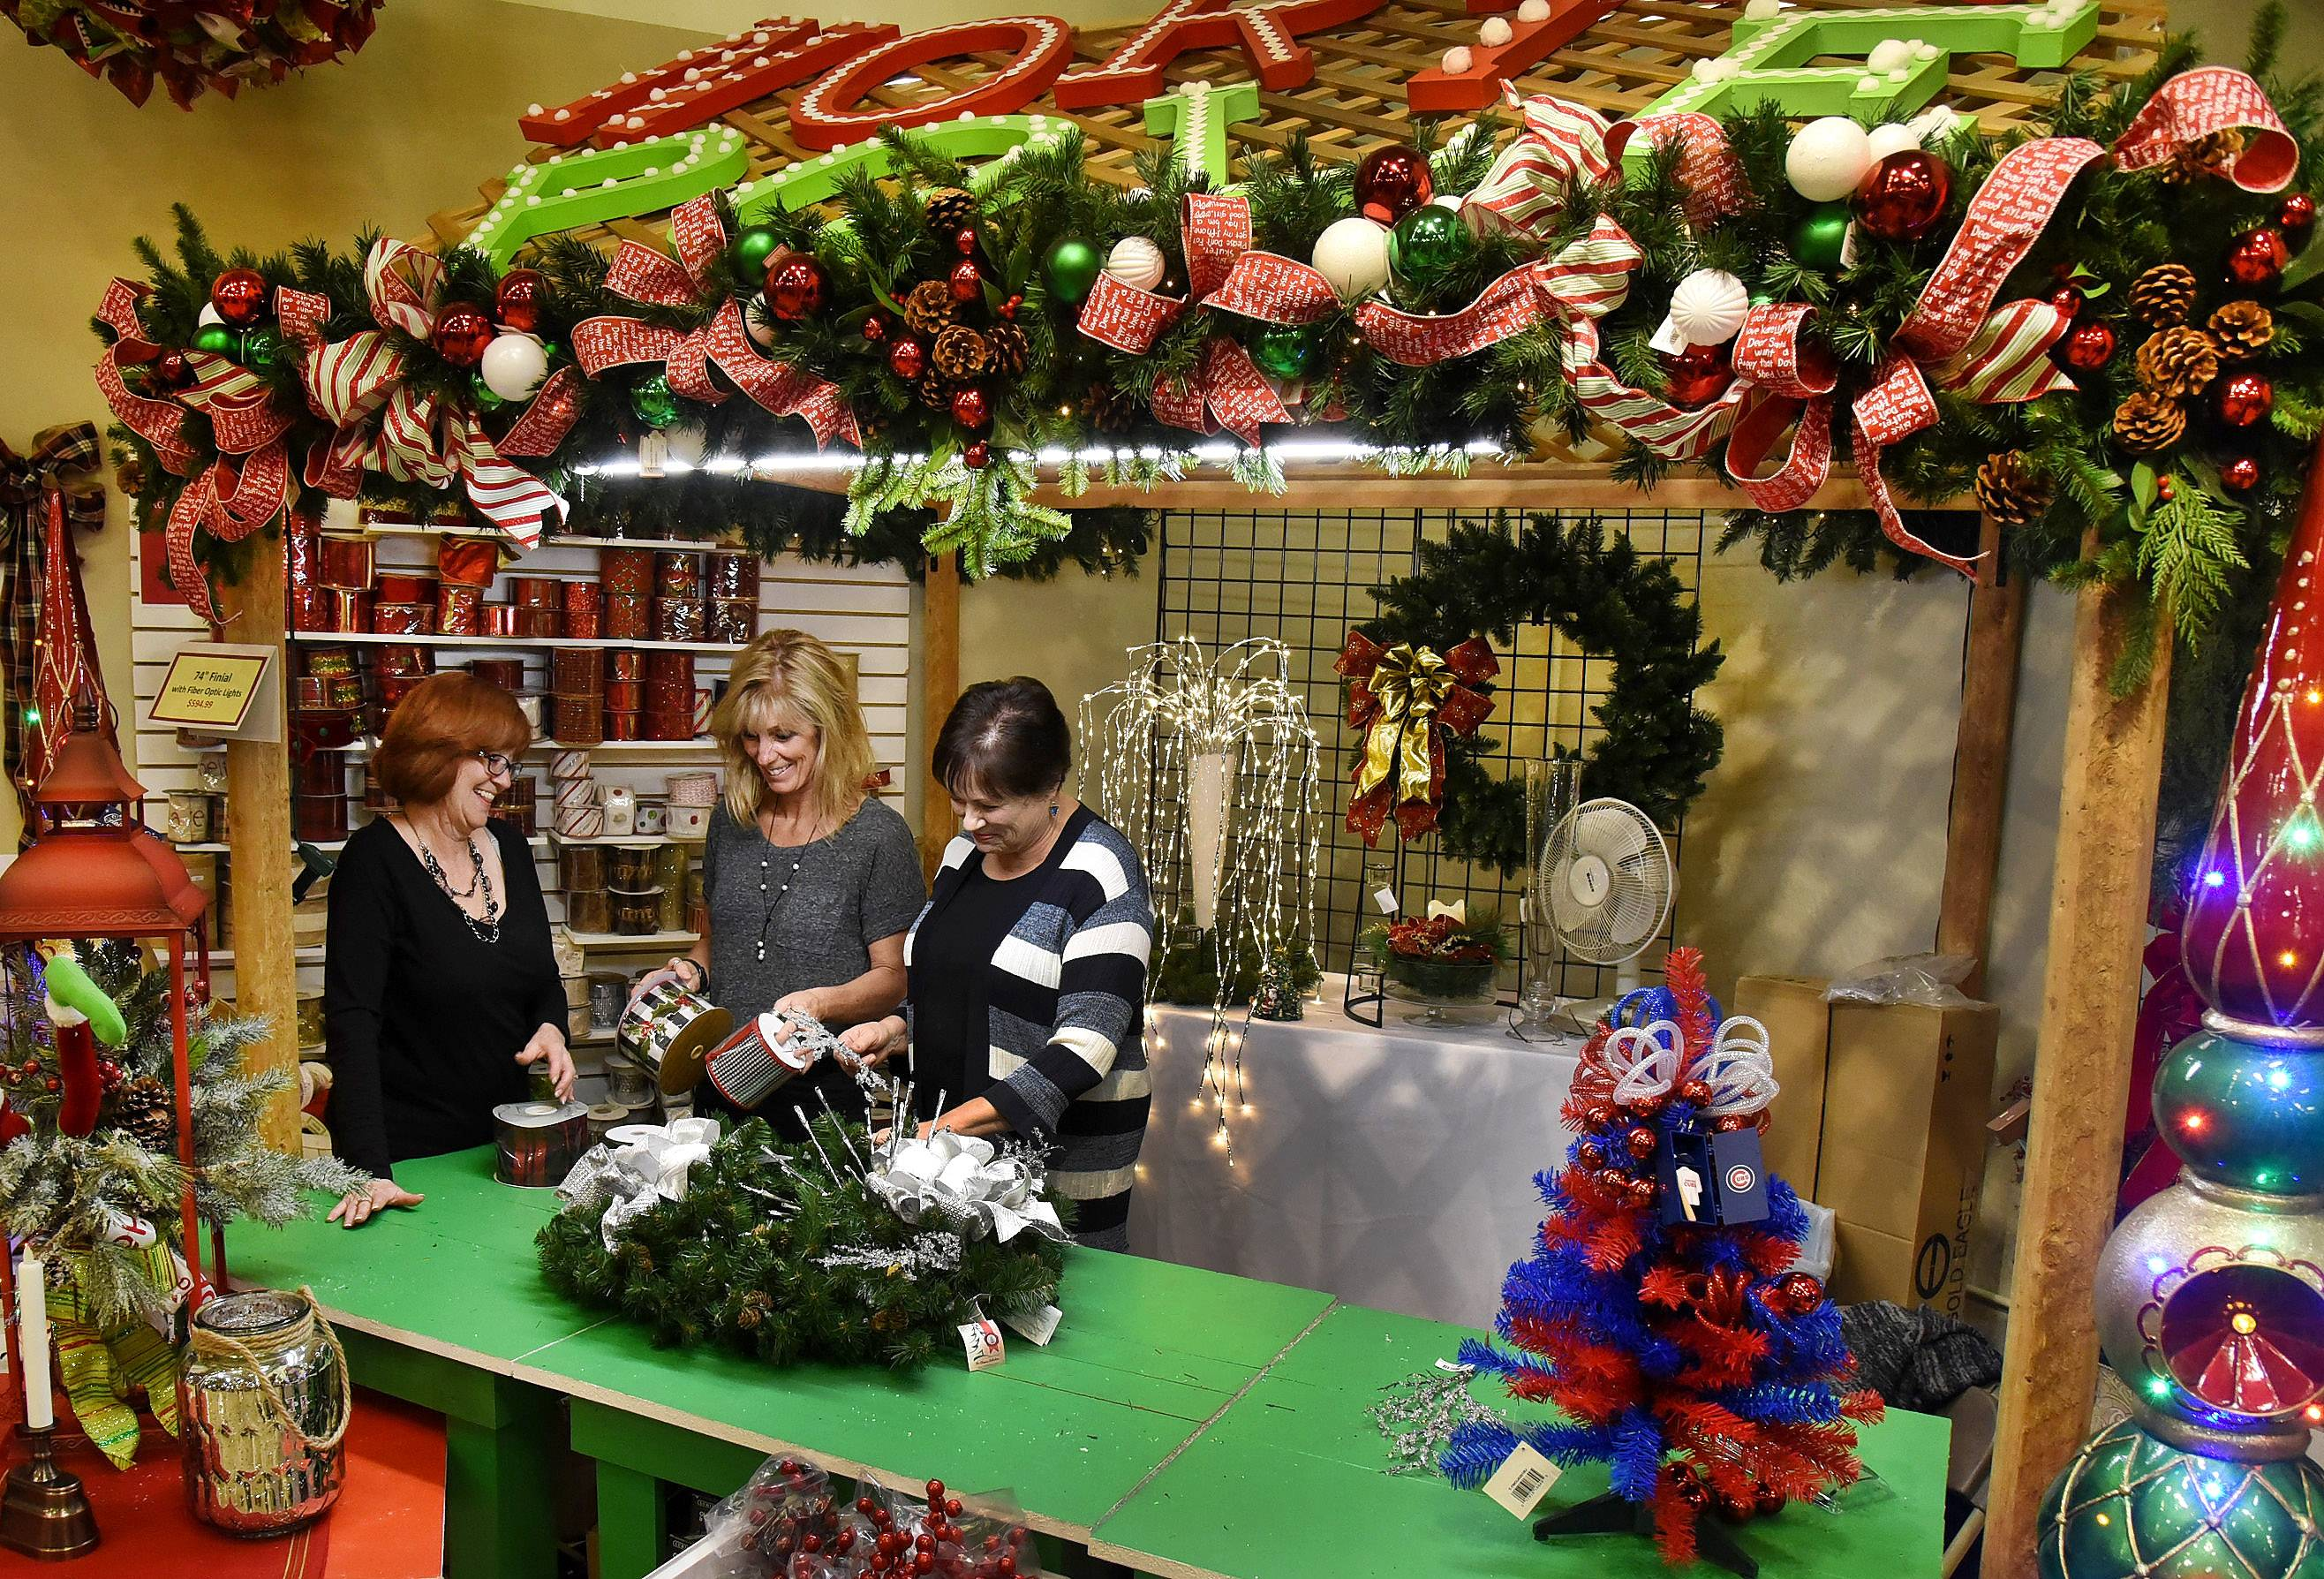 Show room manager Margie Smyth, from left, with designers Cassi Nickolas and Peg Fenstermaker go over some custom designs at Treetime Christmas Creations in Lake Barrington.